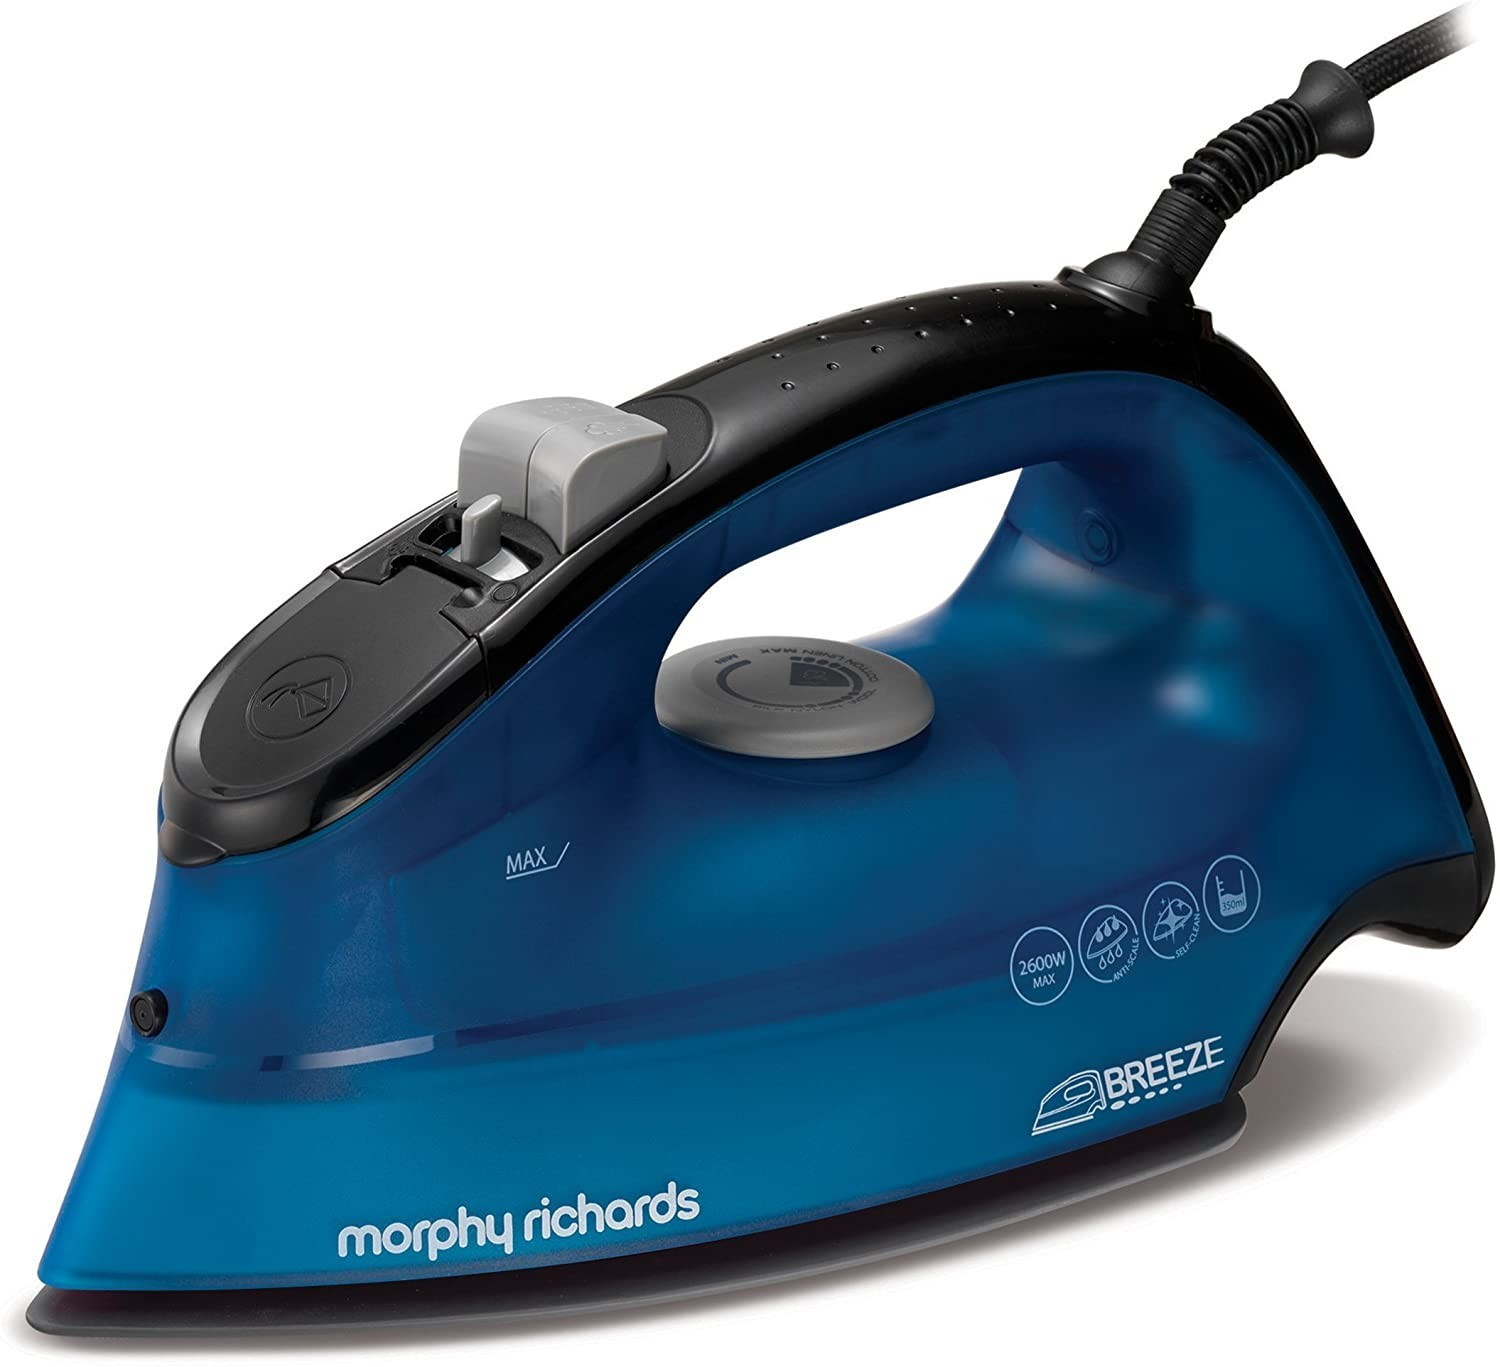 Image of Morphy Richards 300271 Breeze Steam Iron